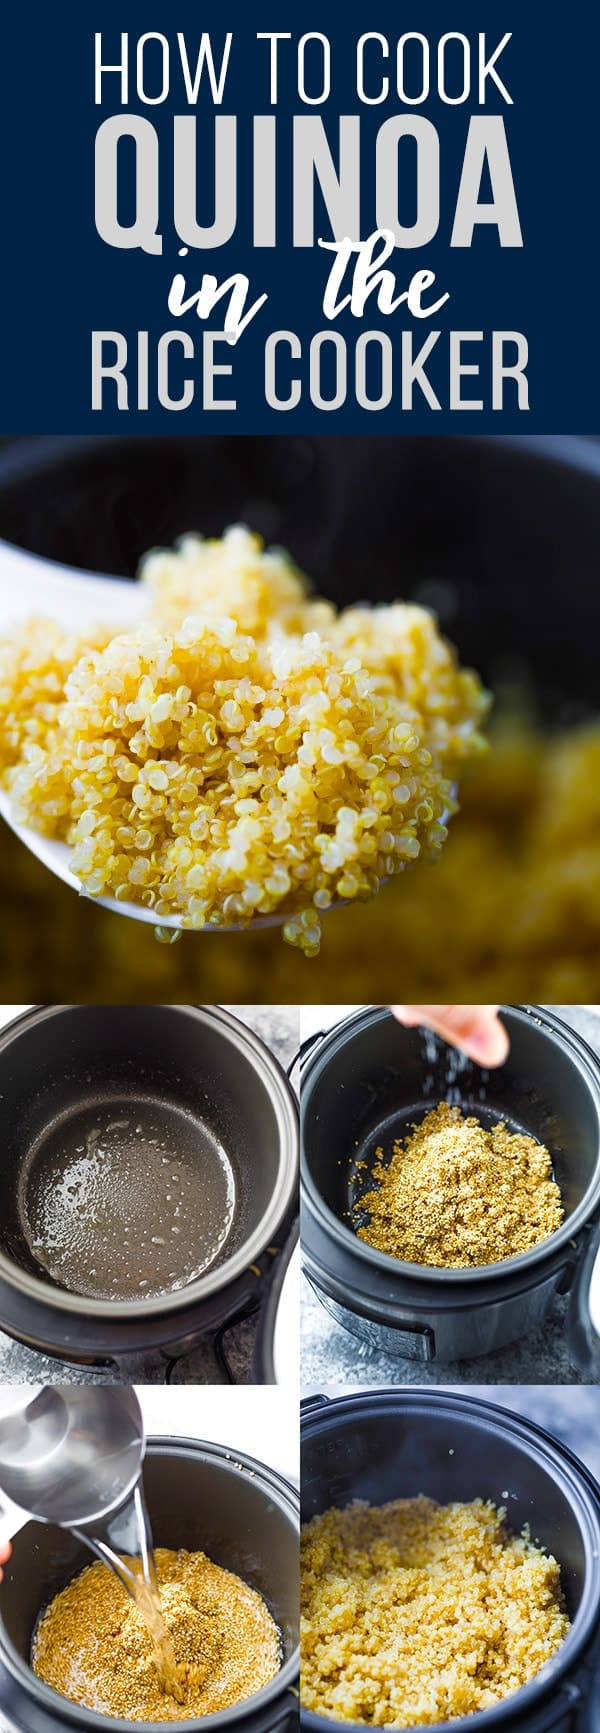 How to cook quinoa in a rice cooker- this hands off trick makes cooking quinoa even easier! Cooking quinoa in rice cooker means no more worrying about your water boiling over, and perfect fluffy quinoa every time. #sweetpeasandsaffron #howto #ricecooker #quinoa #glutenfree #mealprep